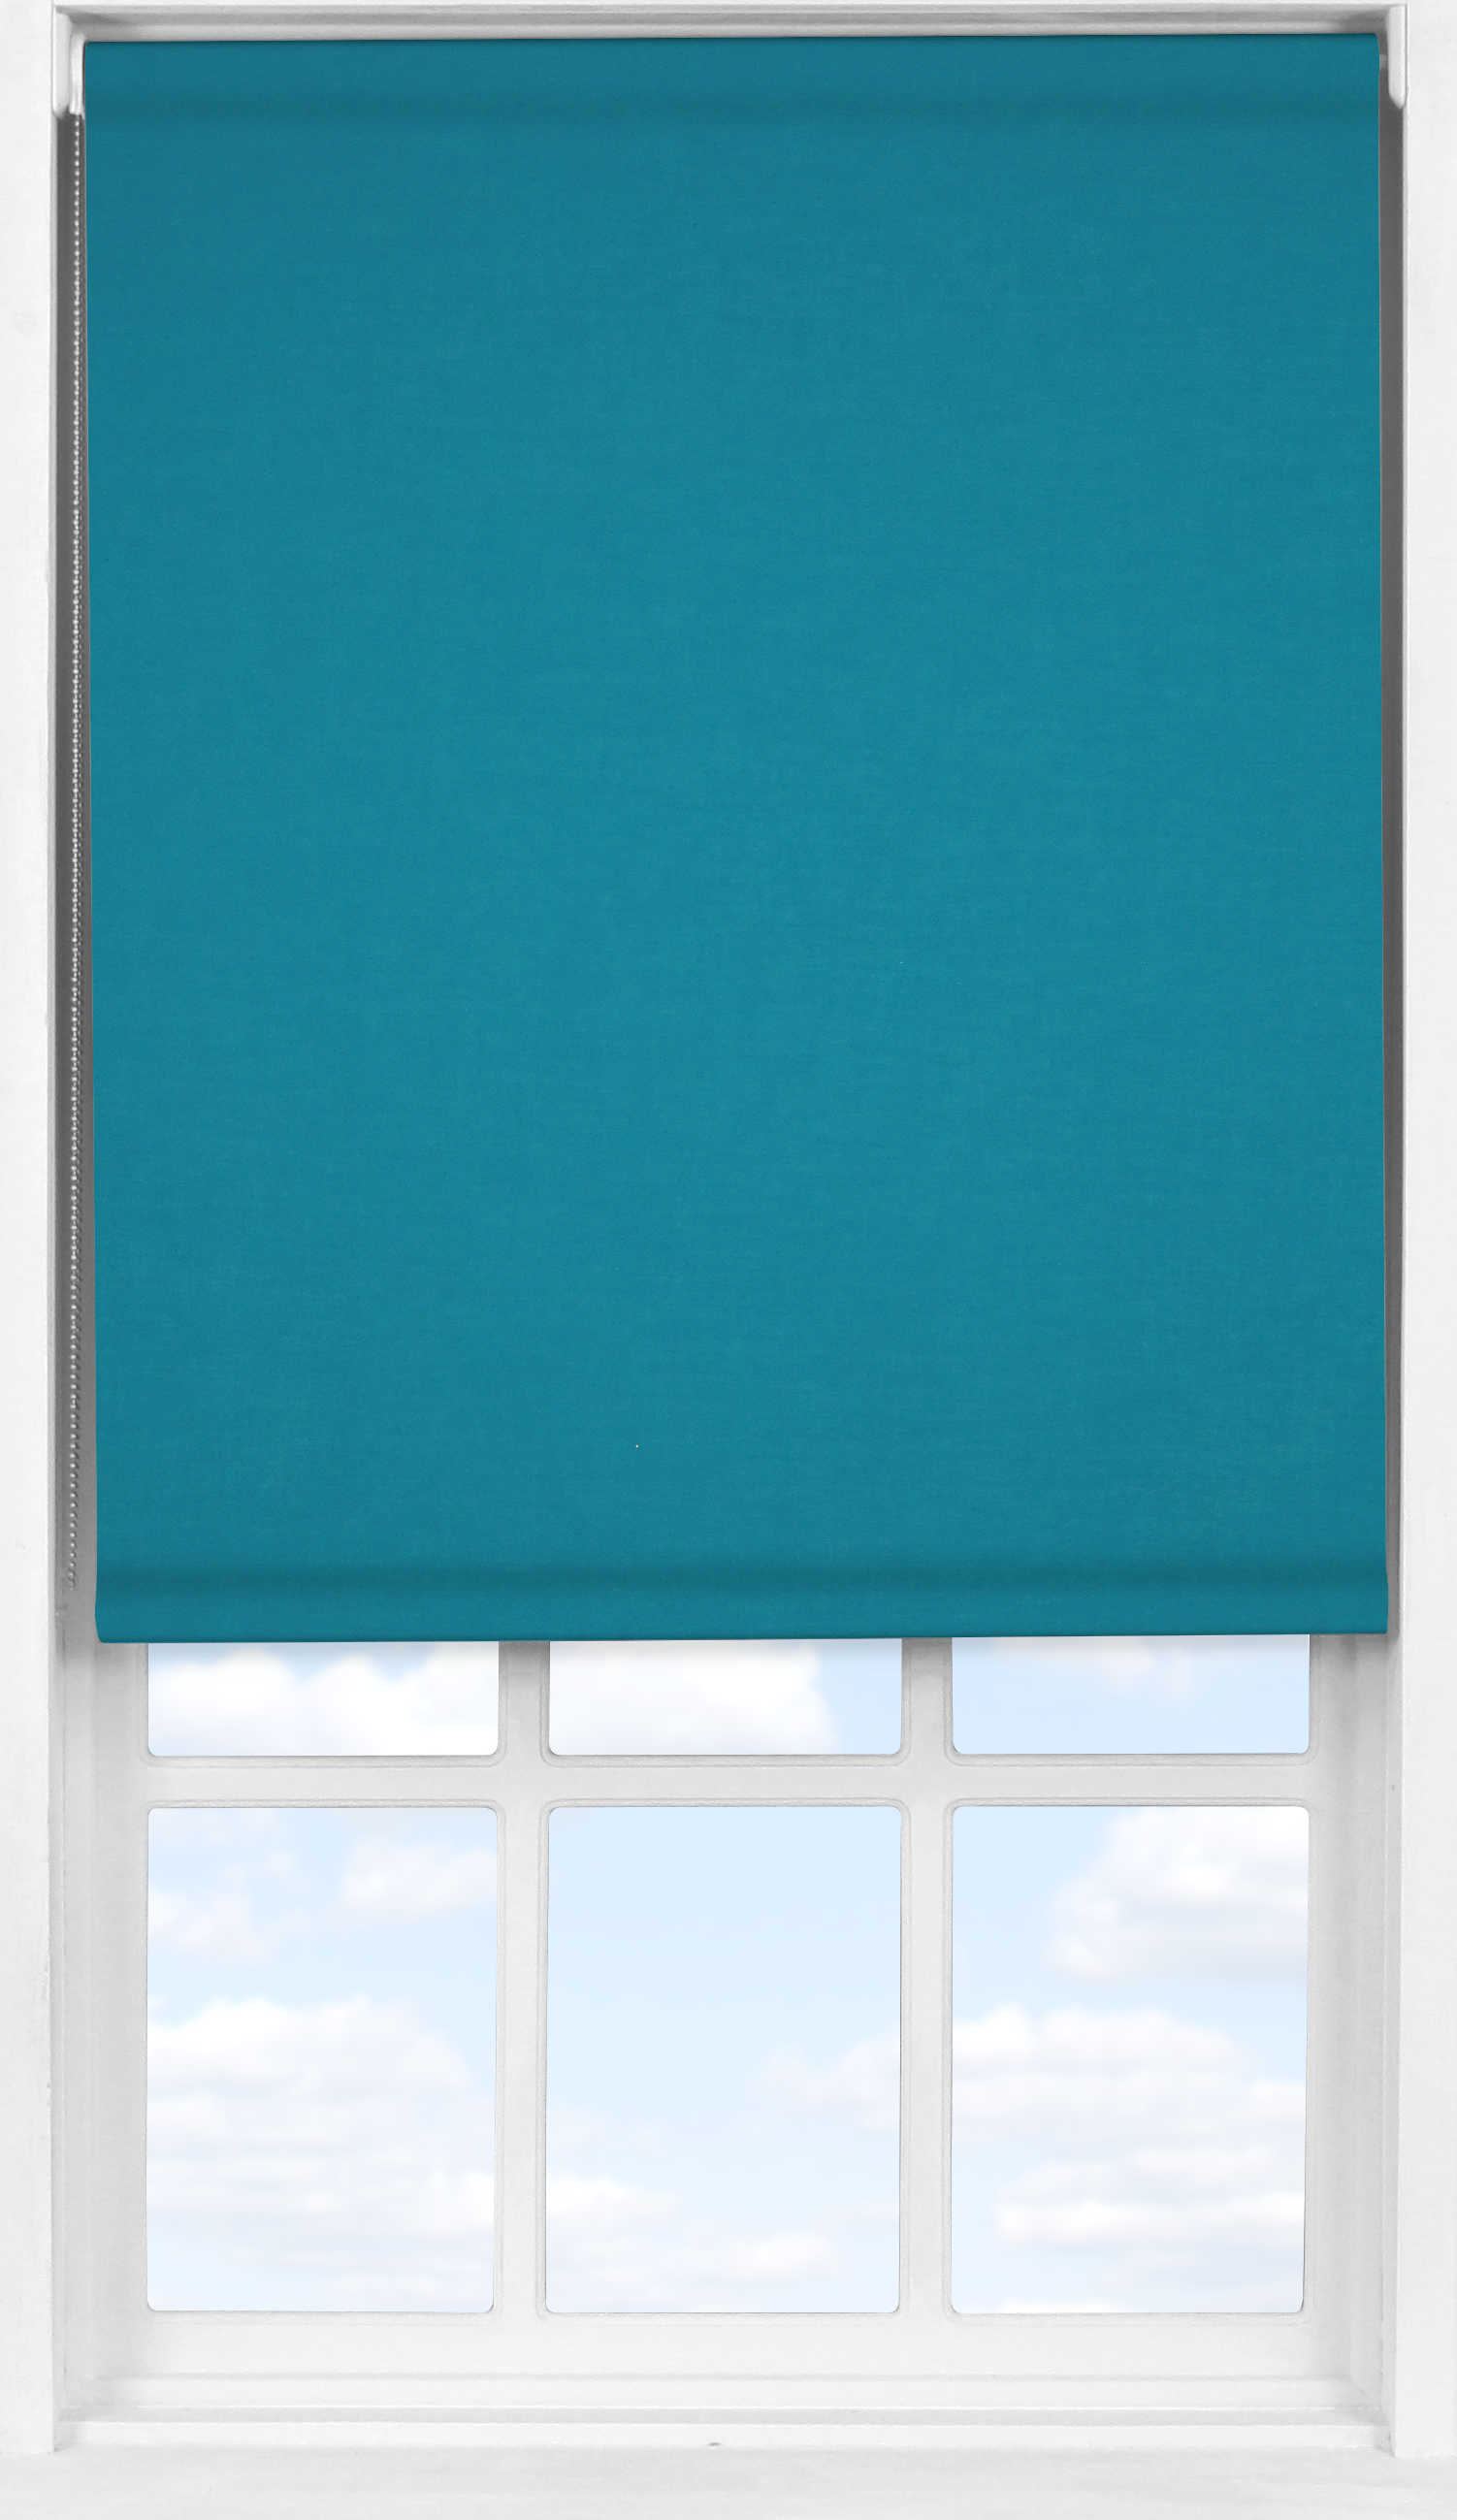 Easifit Roller Blind in Marine Blue Translucent